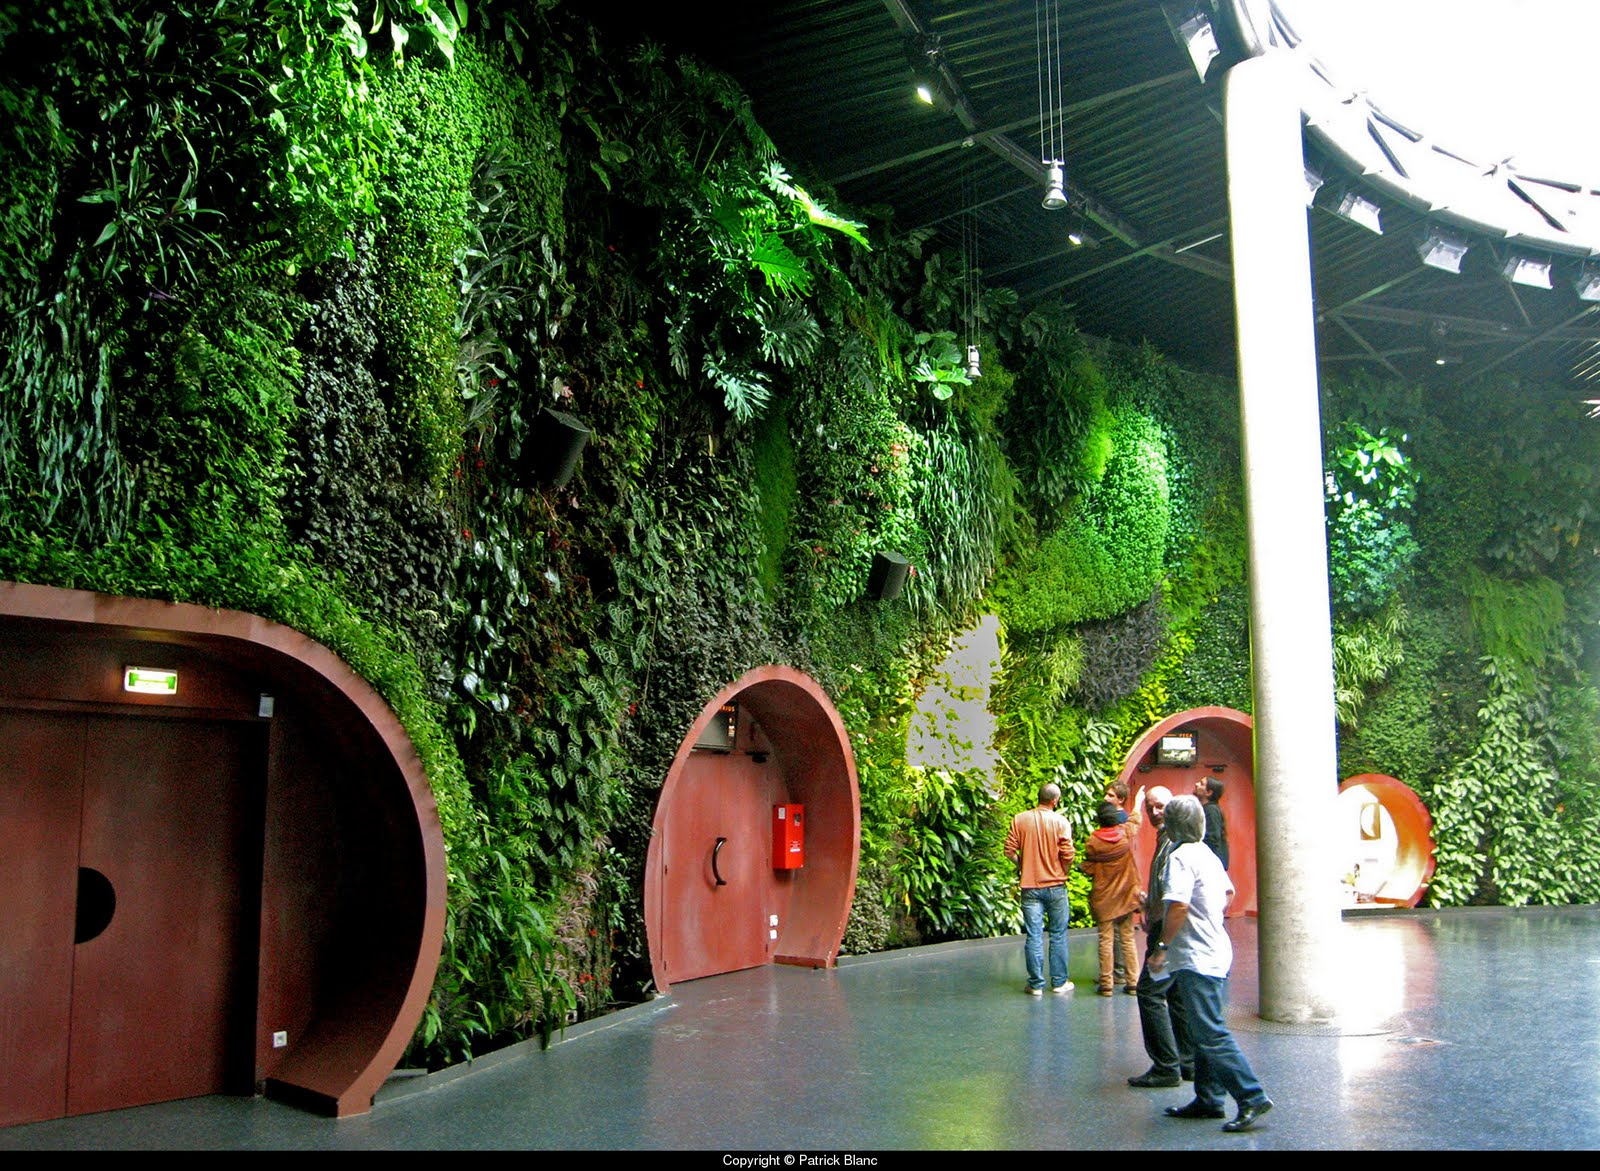 Growing Walls Vertical Gardens The Work Of Patrick